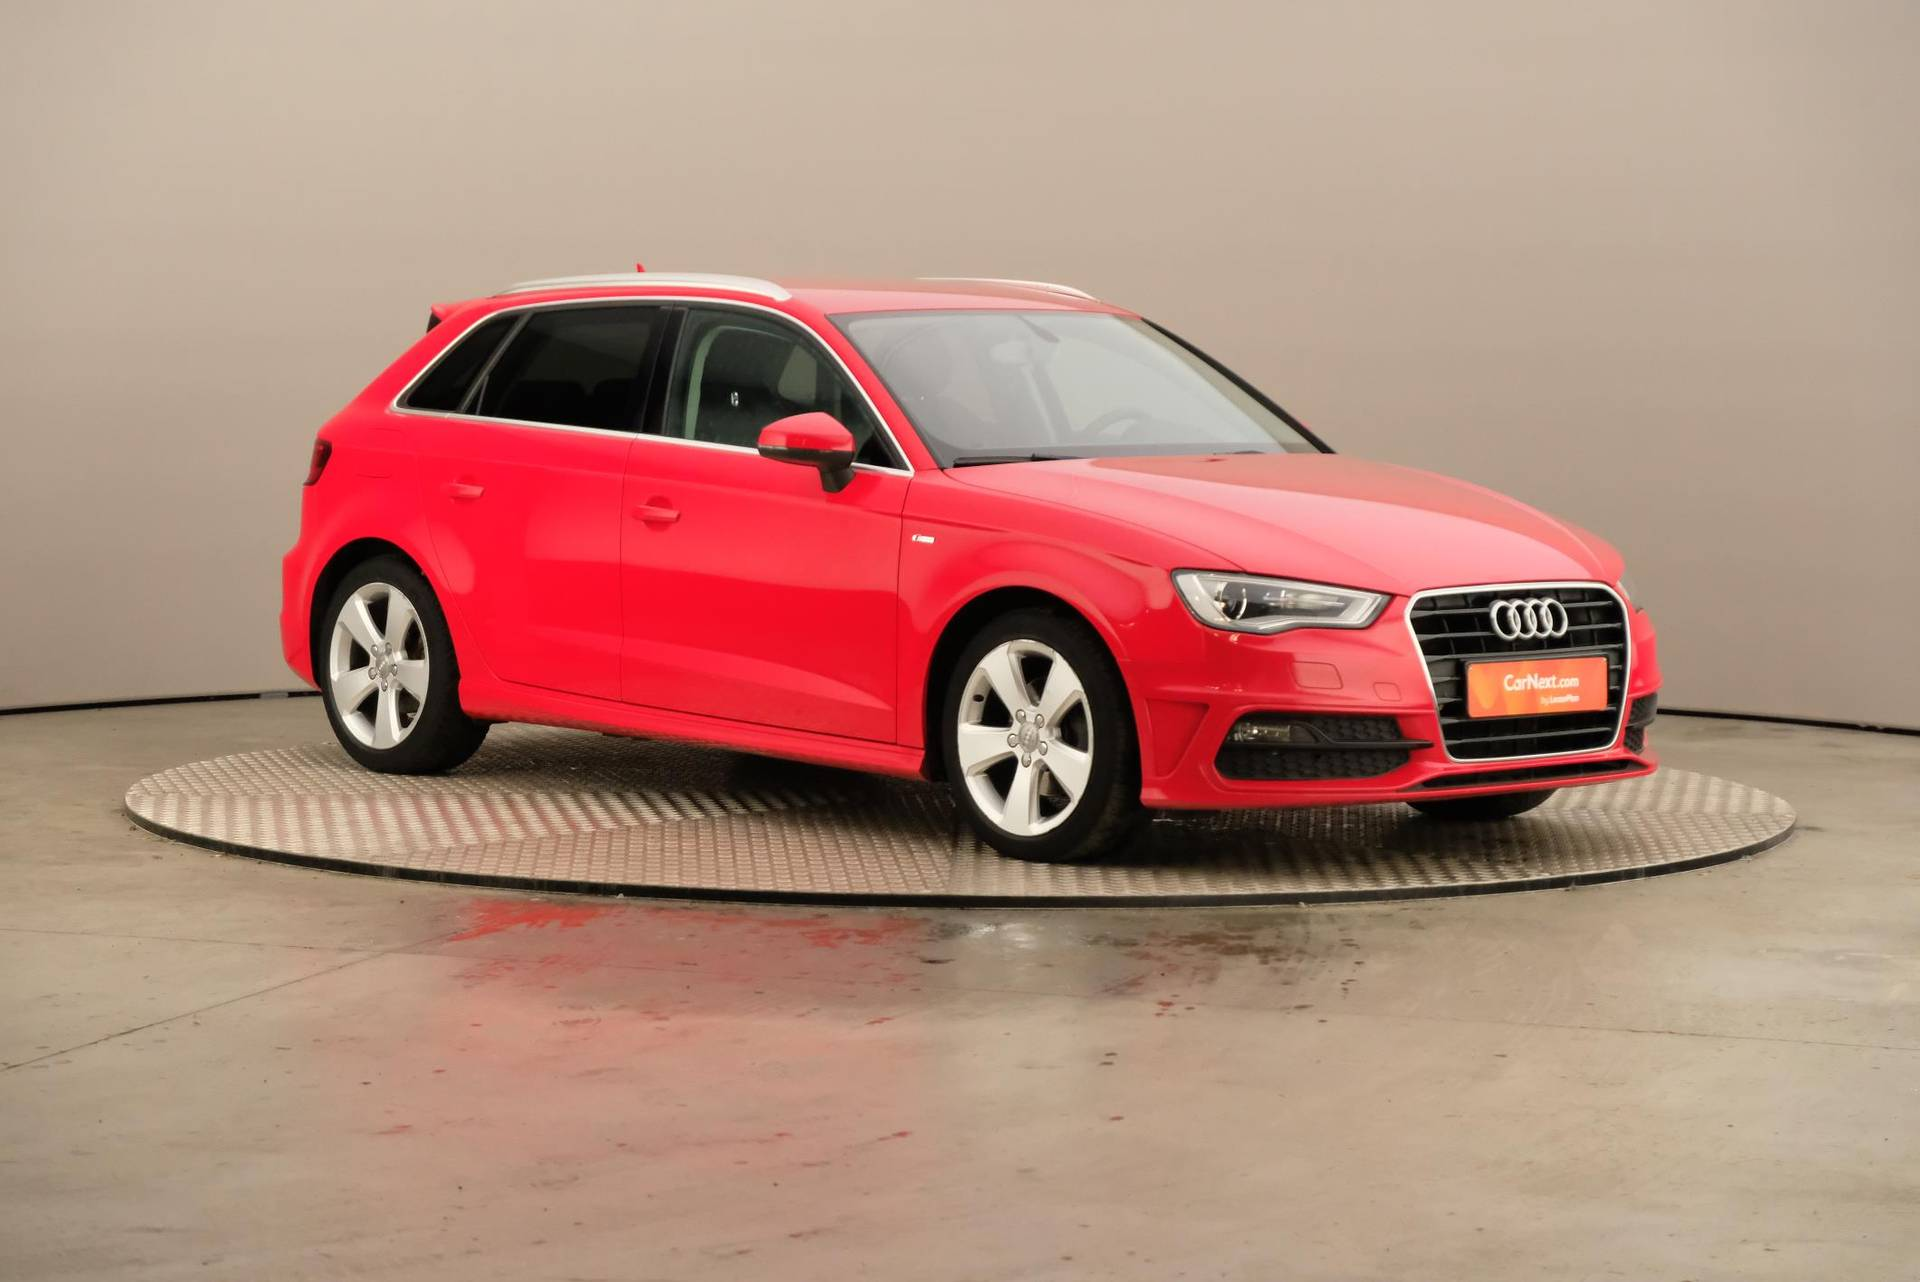 Audi A3 1.6 TDi Ambition PACK SPORT DESIGN XENON GPS PDC CRUISE CONTROL, 360-image27